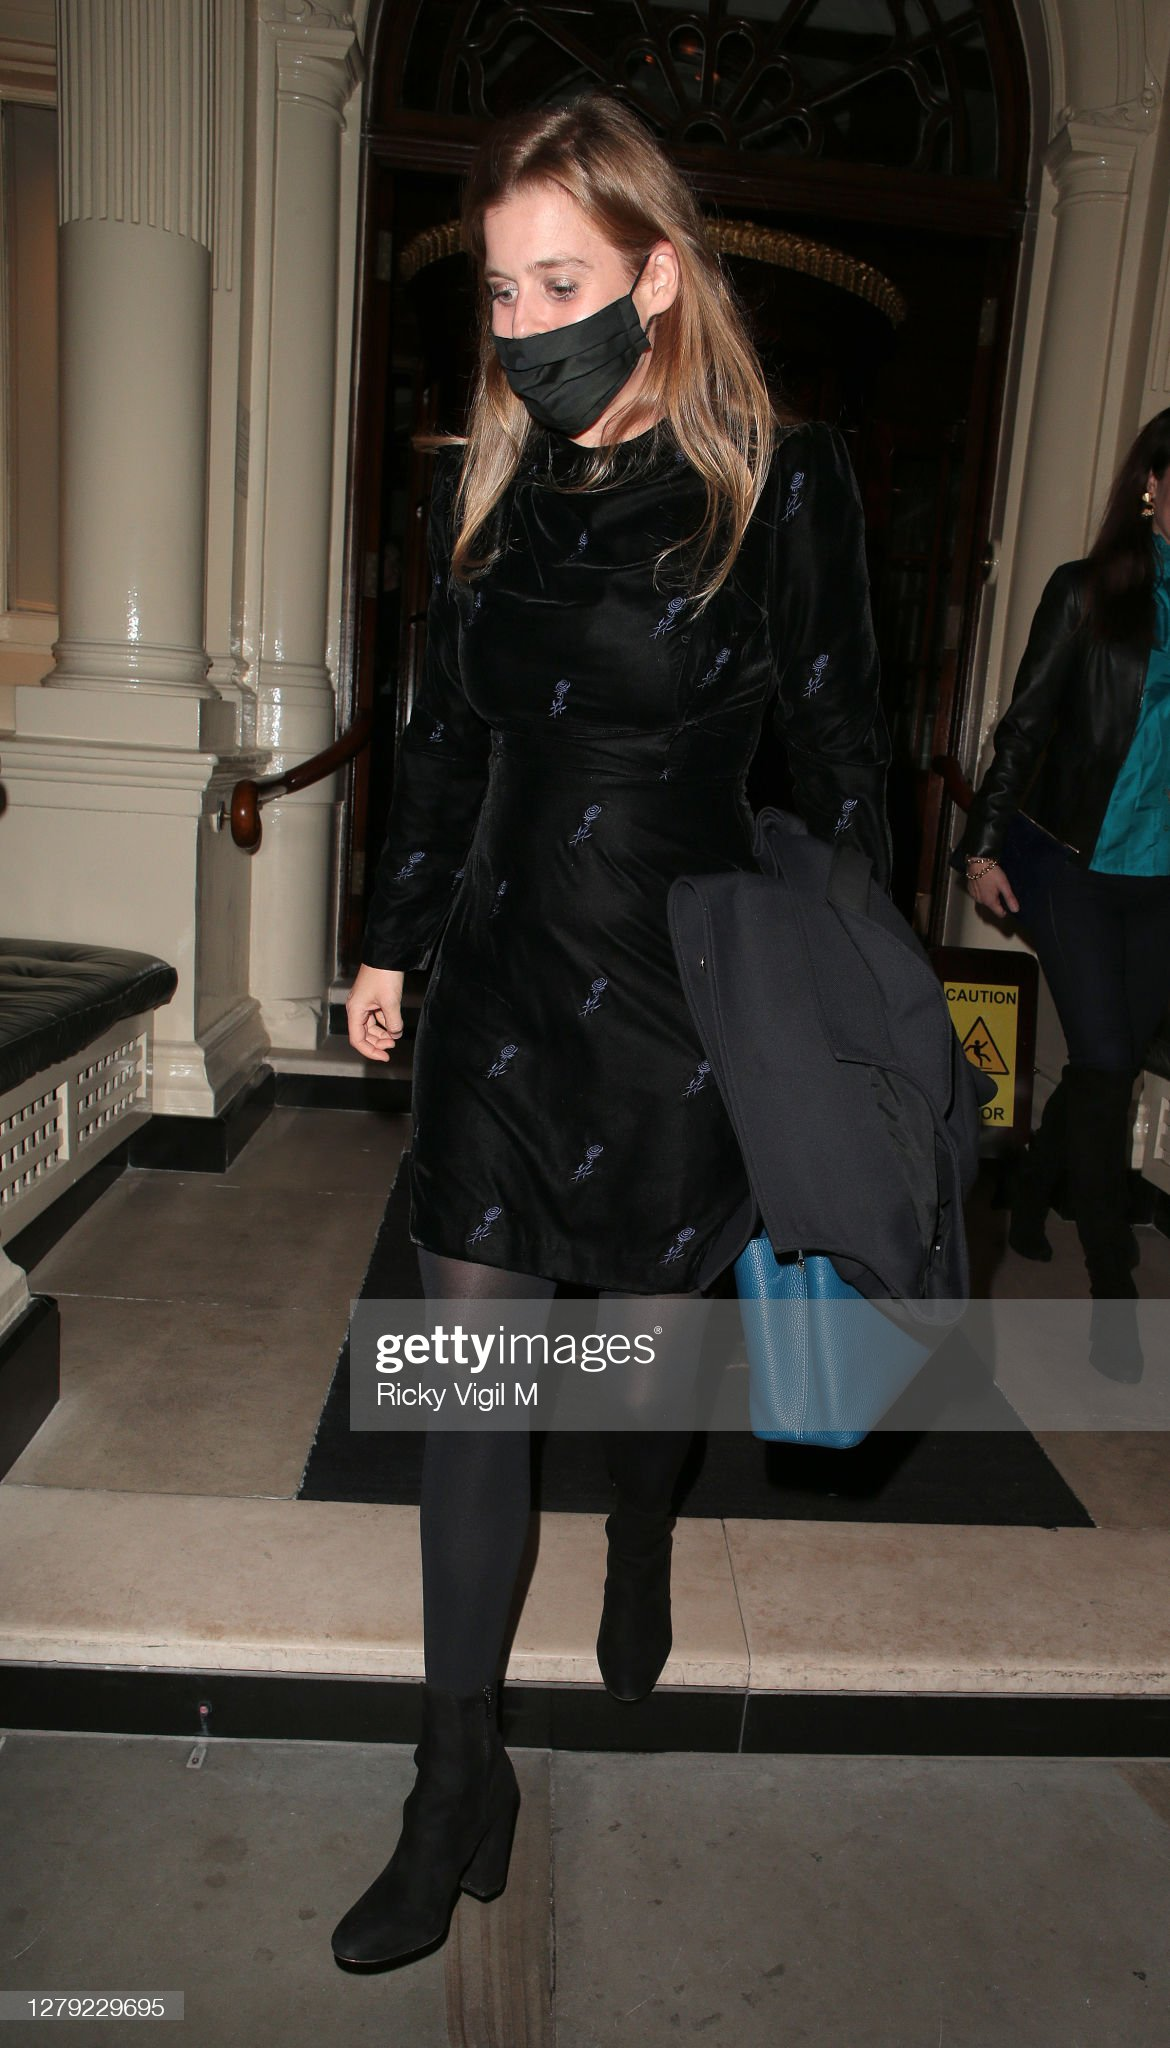 https://media.gettyimages.com/photos/princess-beatrice-seen-on-a-night-out-at-the-connaught-hotel-on-08-picture-id1279229695?s=2048x2048